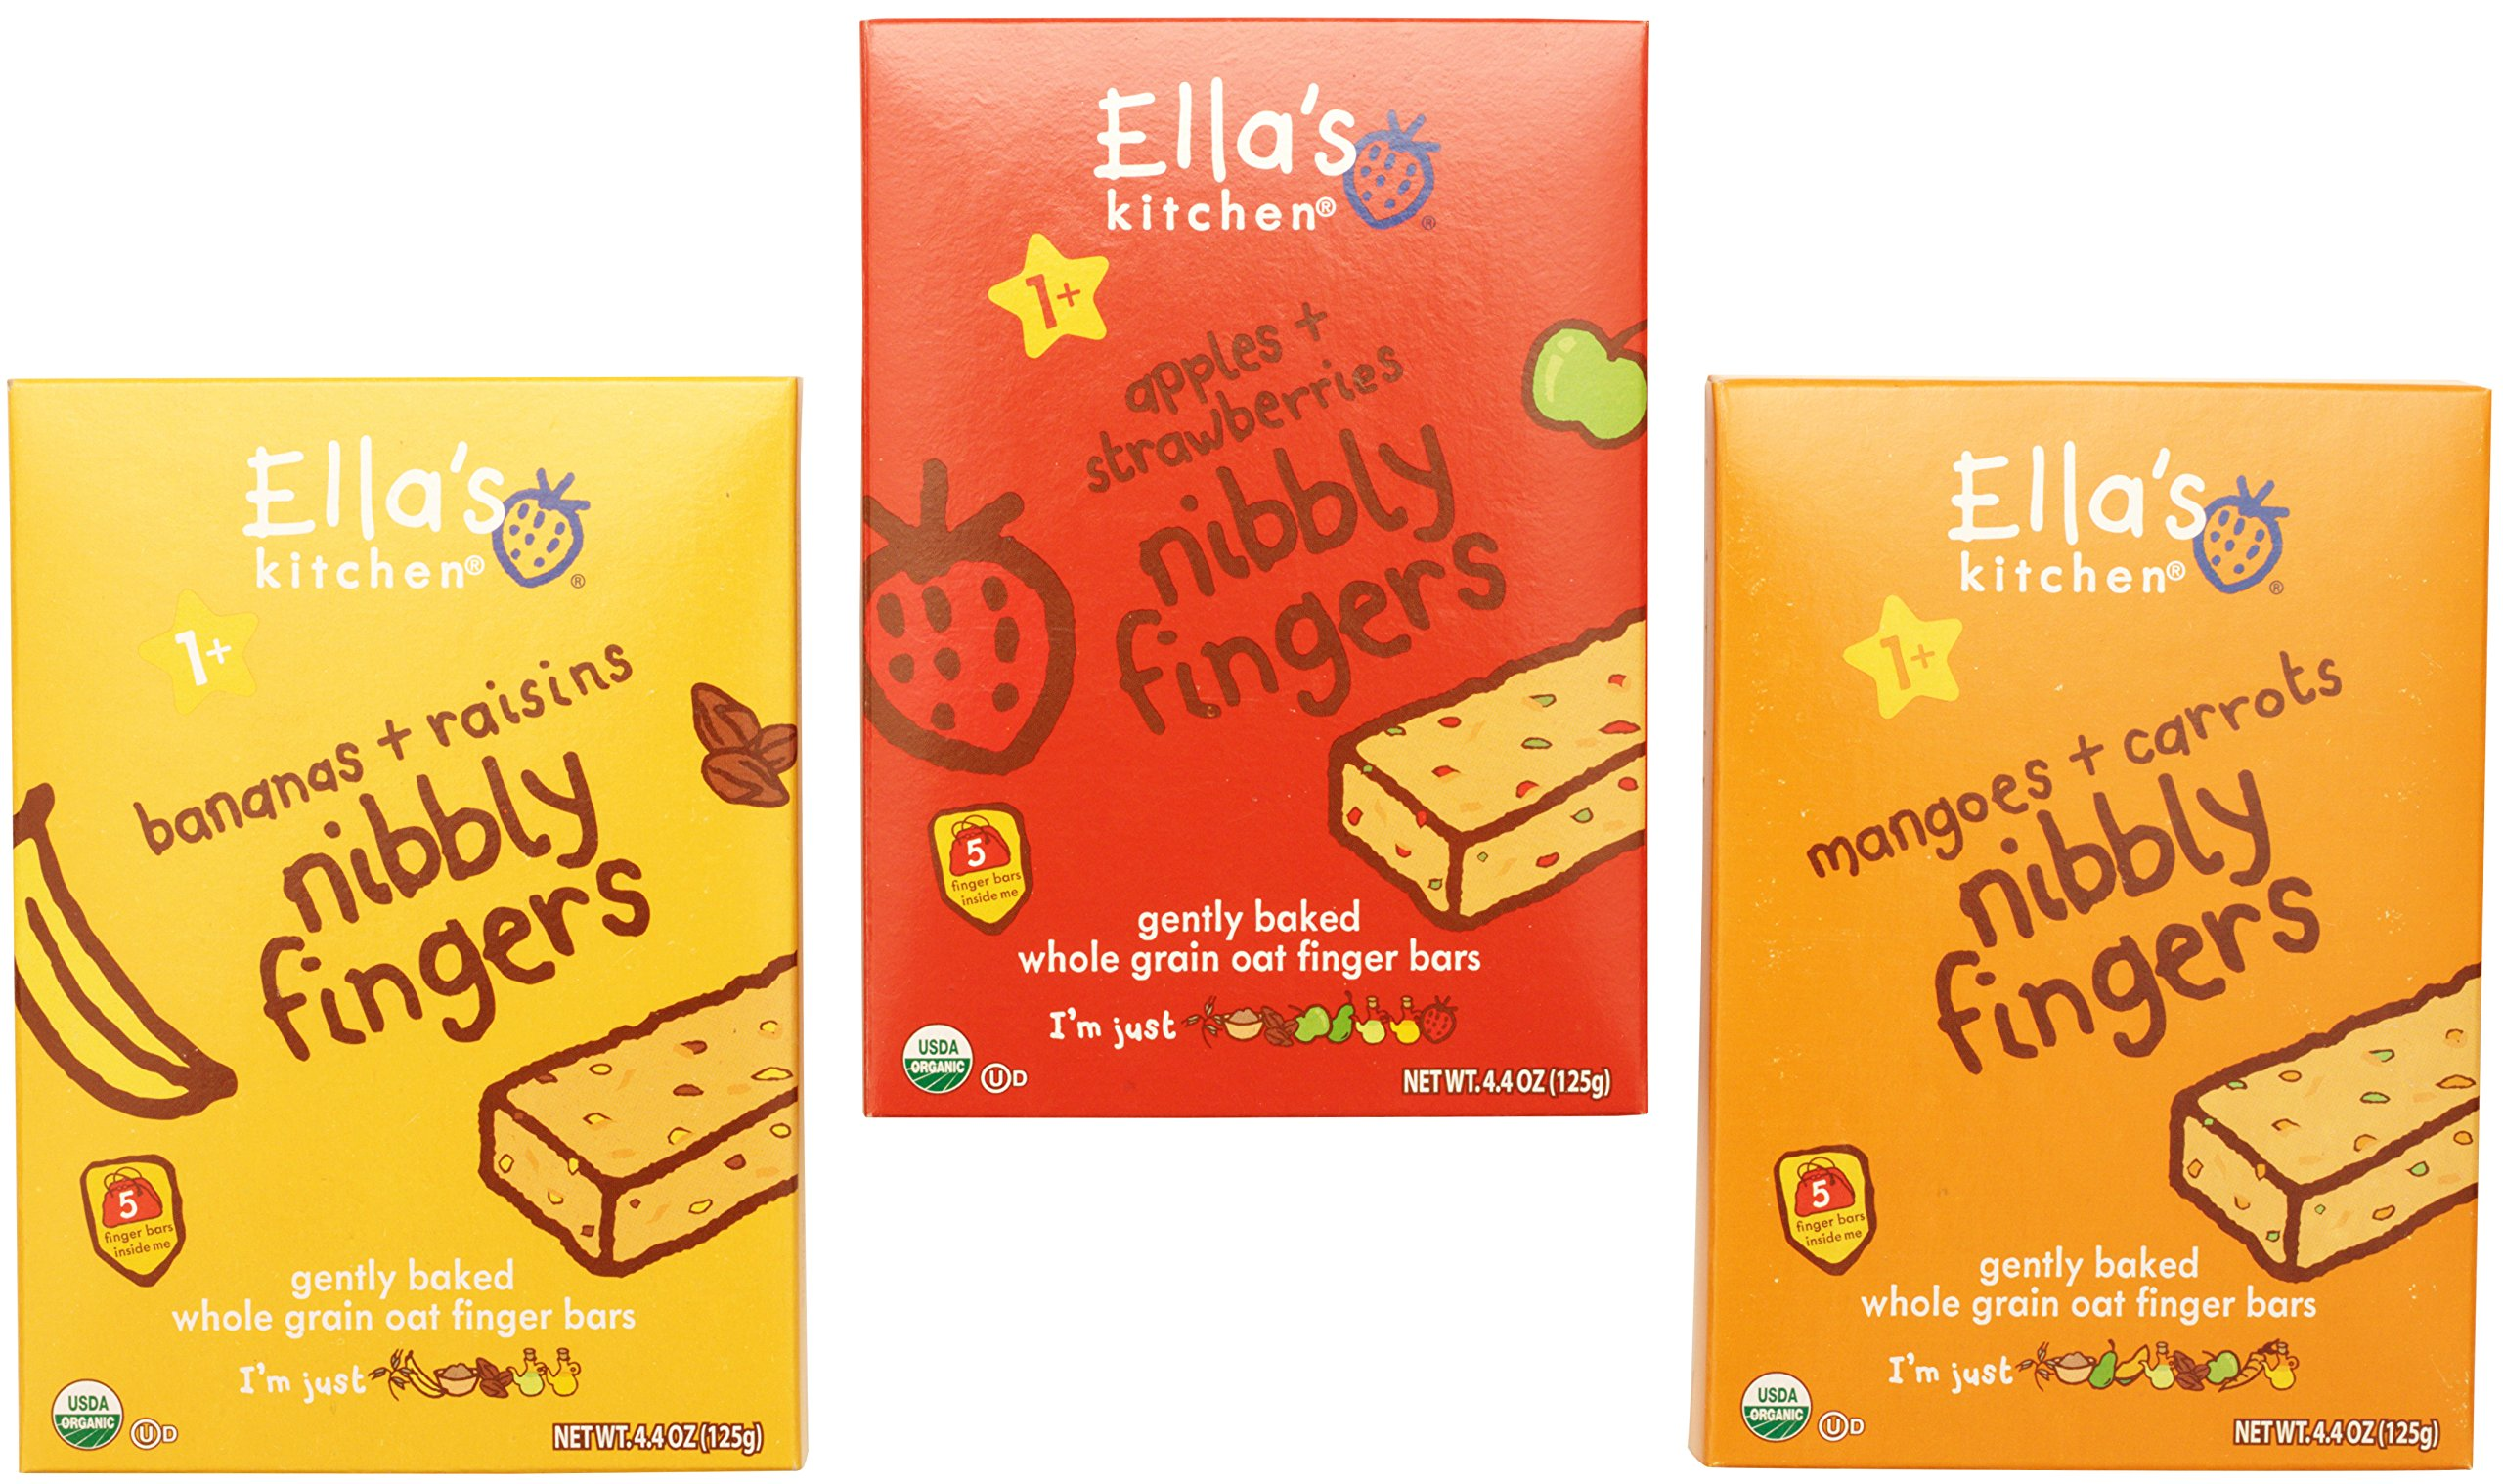 Ella's Kitchen Nibbly Fingers Organic Bundle: (1) Mangoes and Carrots 4.4oz, (1) Apples and Strawberries 4.4oz, (1) Bananas and Raisins 4.4oz (3 Pack Total) by Ella's Kitchen